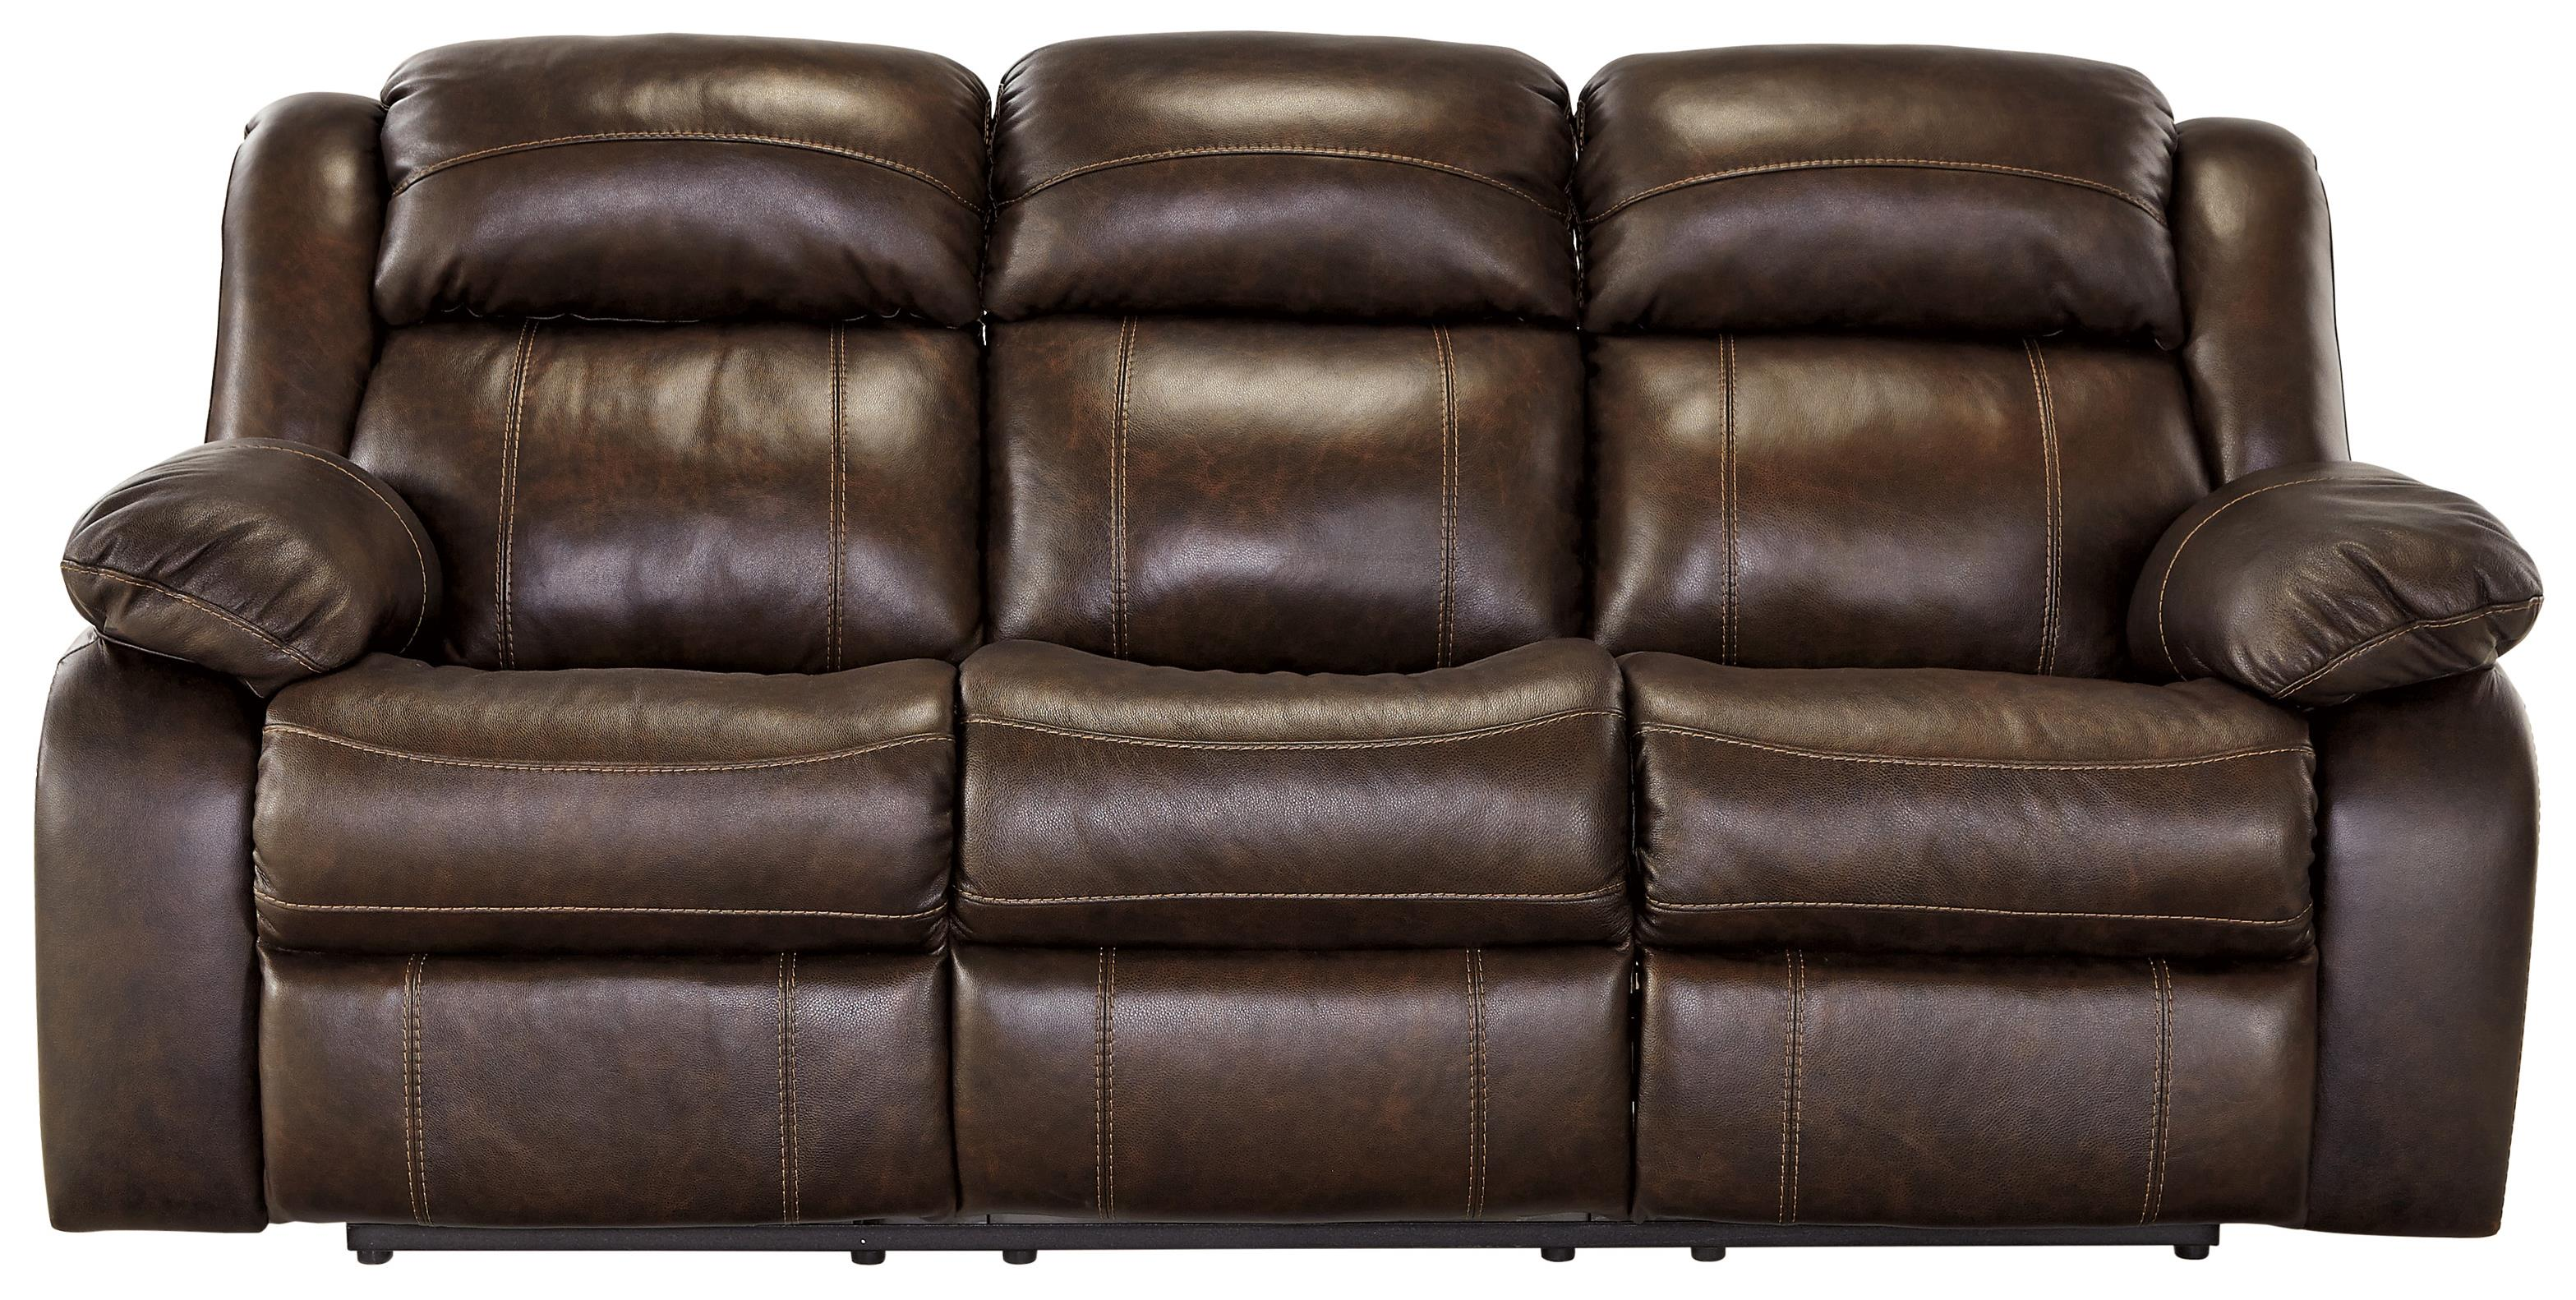 Signature Design by Ashley Branton Reclining Power Sofa - Item Number: U7190187